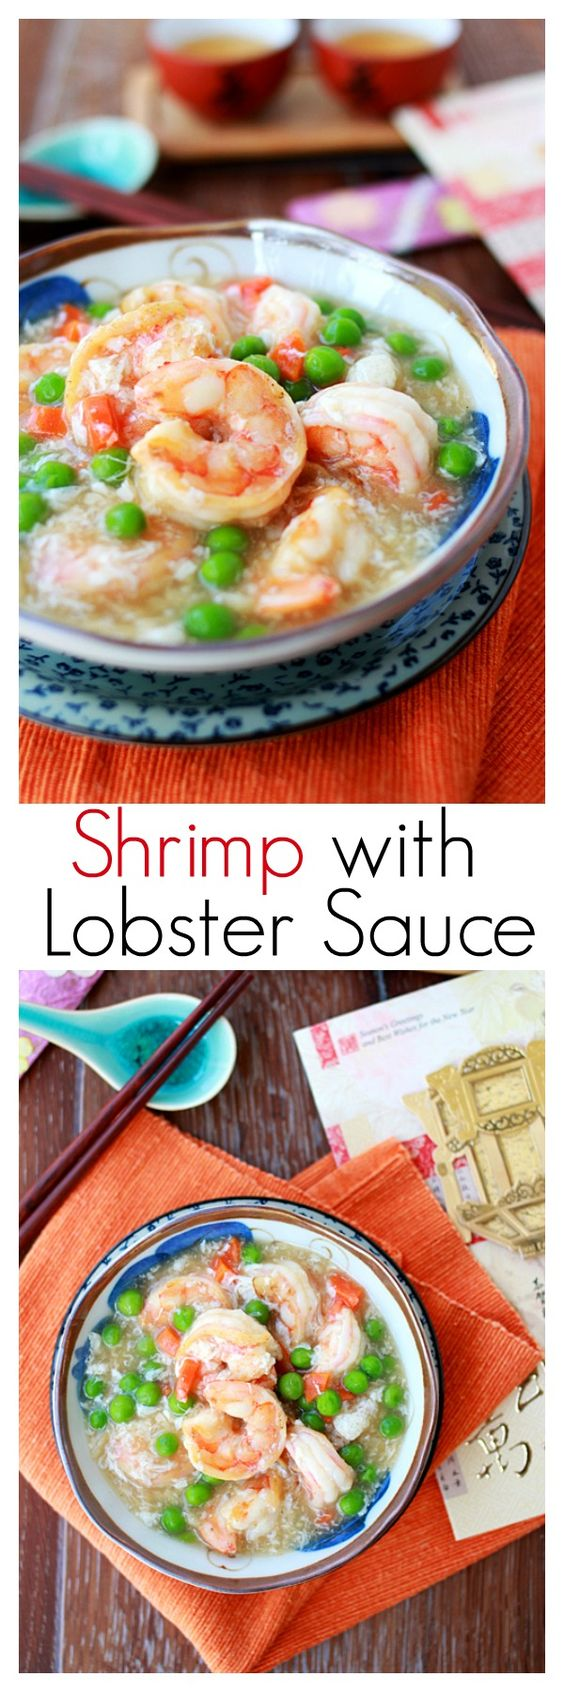 {American-Chinese} Shrimp with Lobster Sauce - quick, easy recipe that produces the most delicious shrimp in eggy lobster sauce!! | rasamalaysia.com: